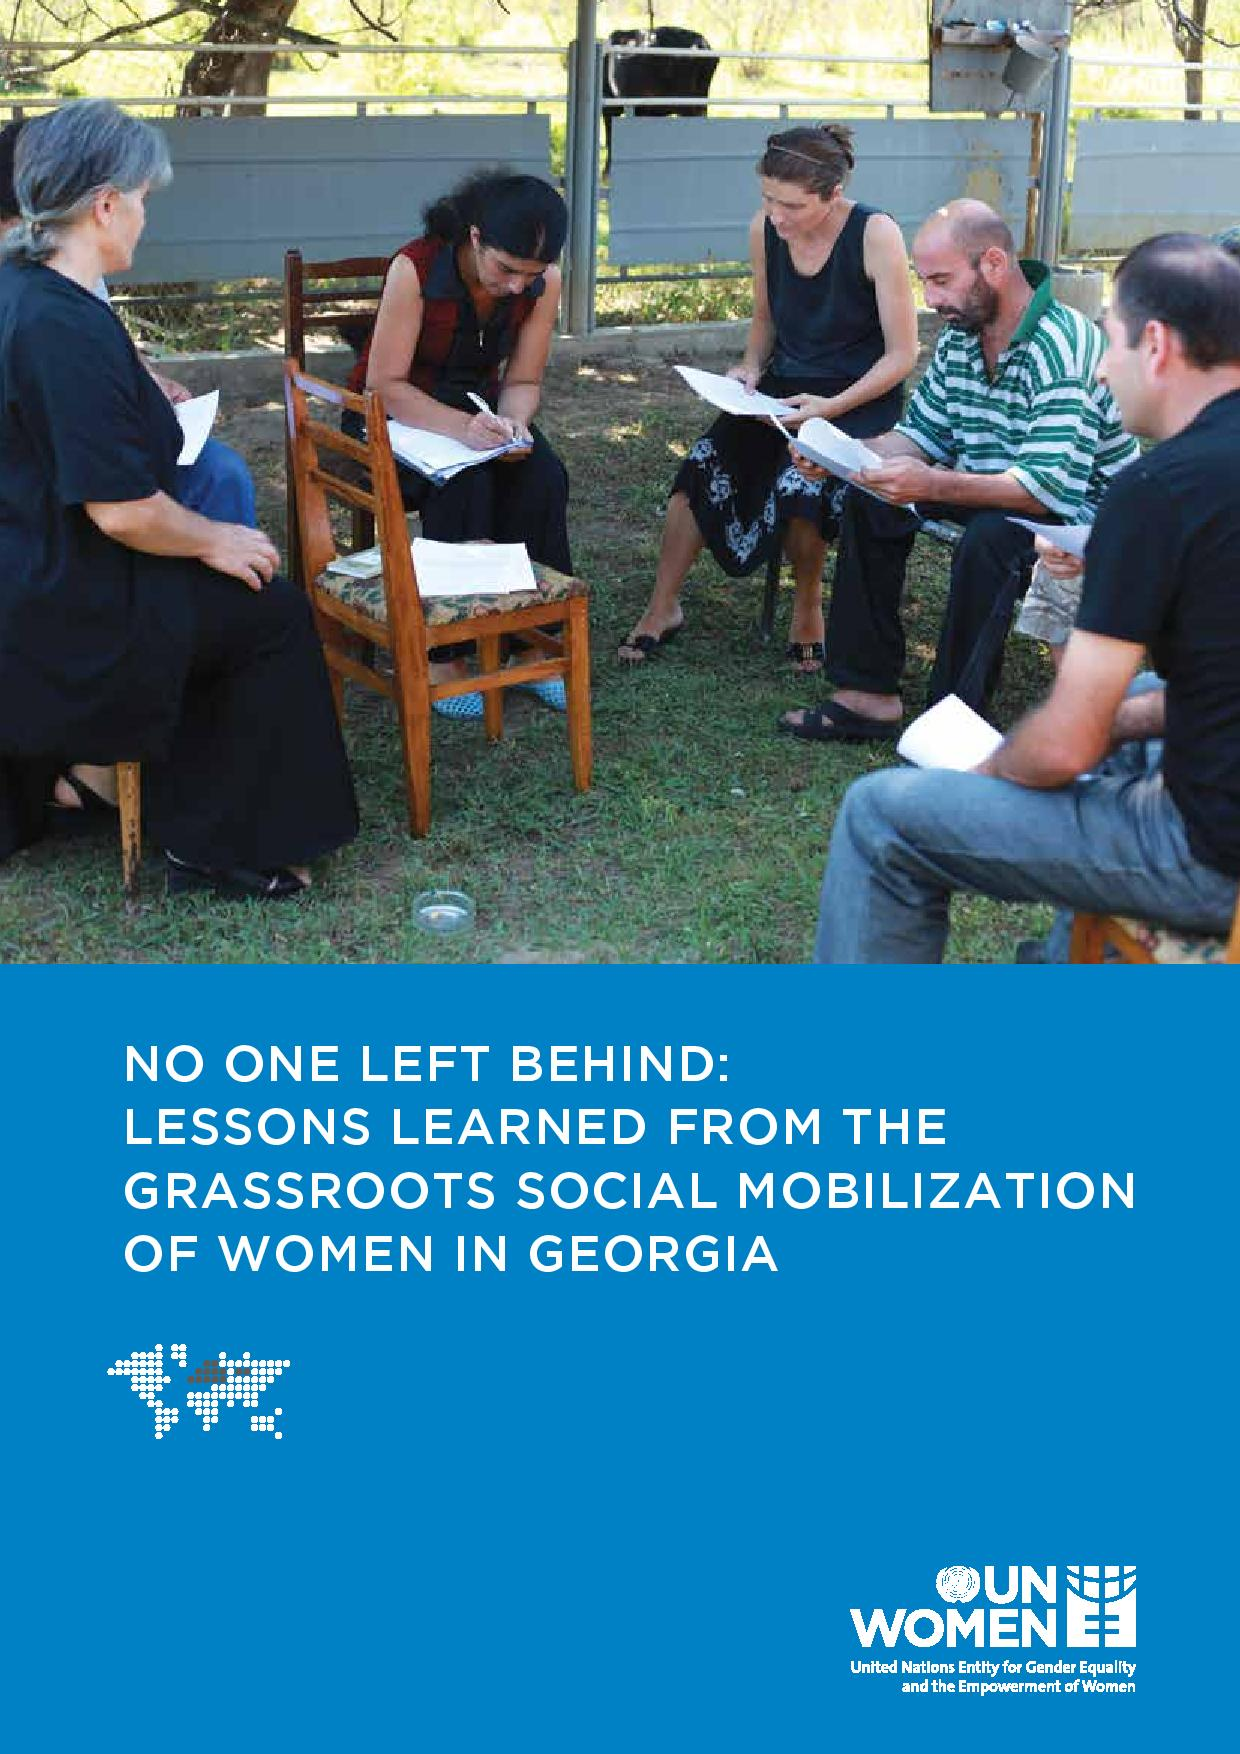 No one left behind: lessons learned from the grassroots social mobilization of women in Georgia